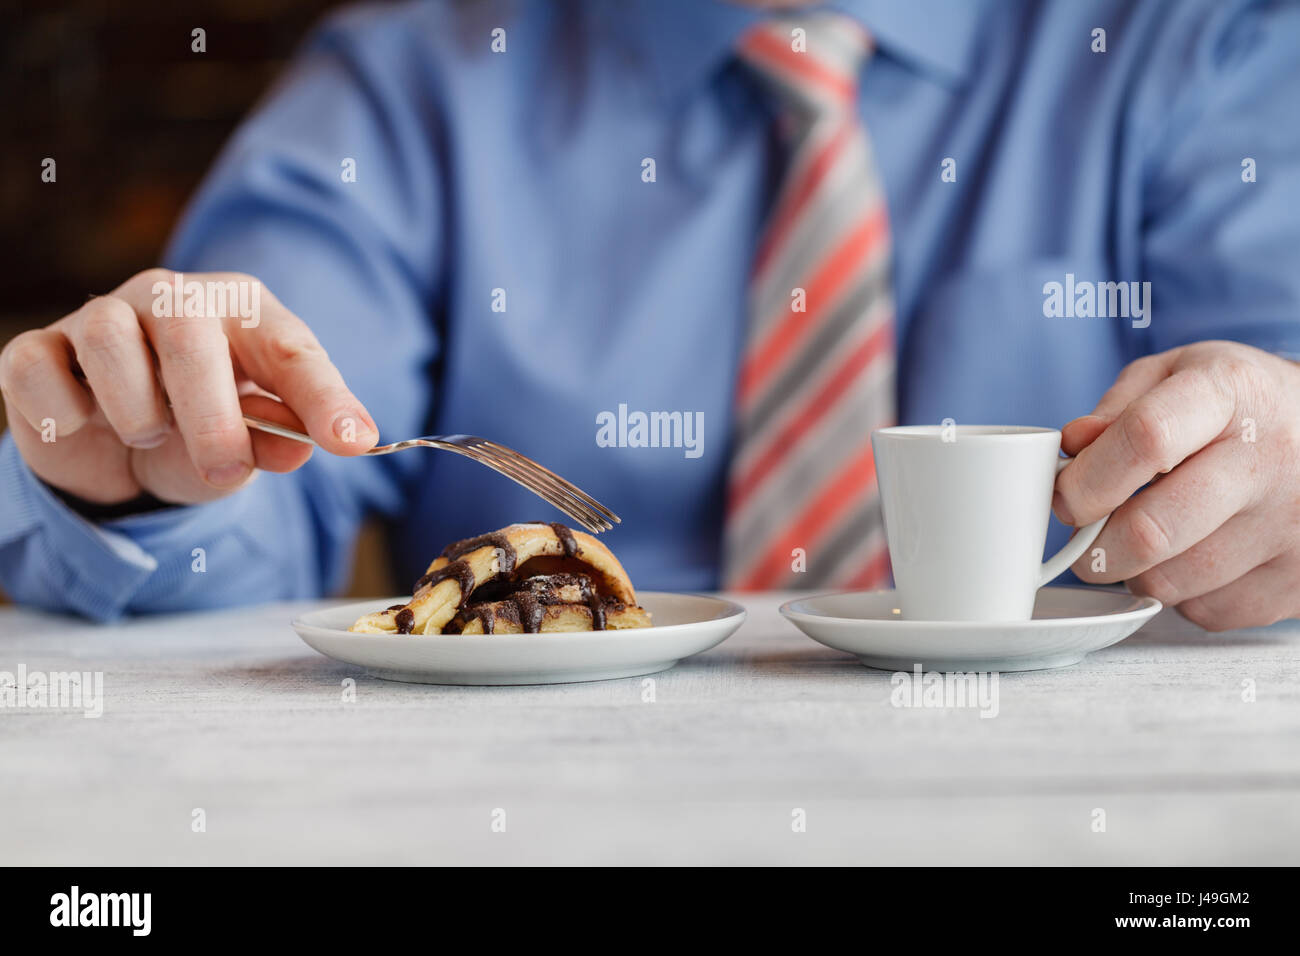 hand cutting homemade caramel custard cake on white plate. On wooden table - Stock Image